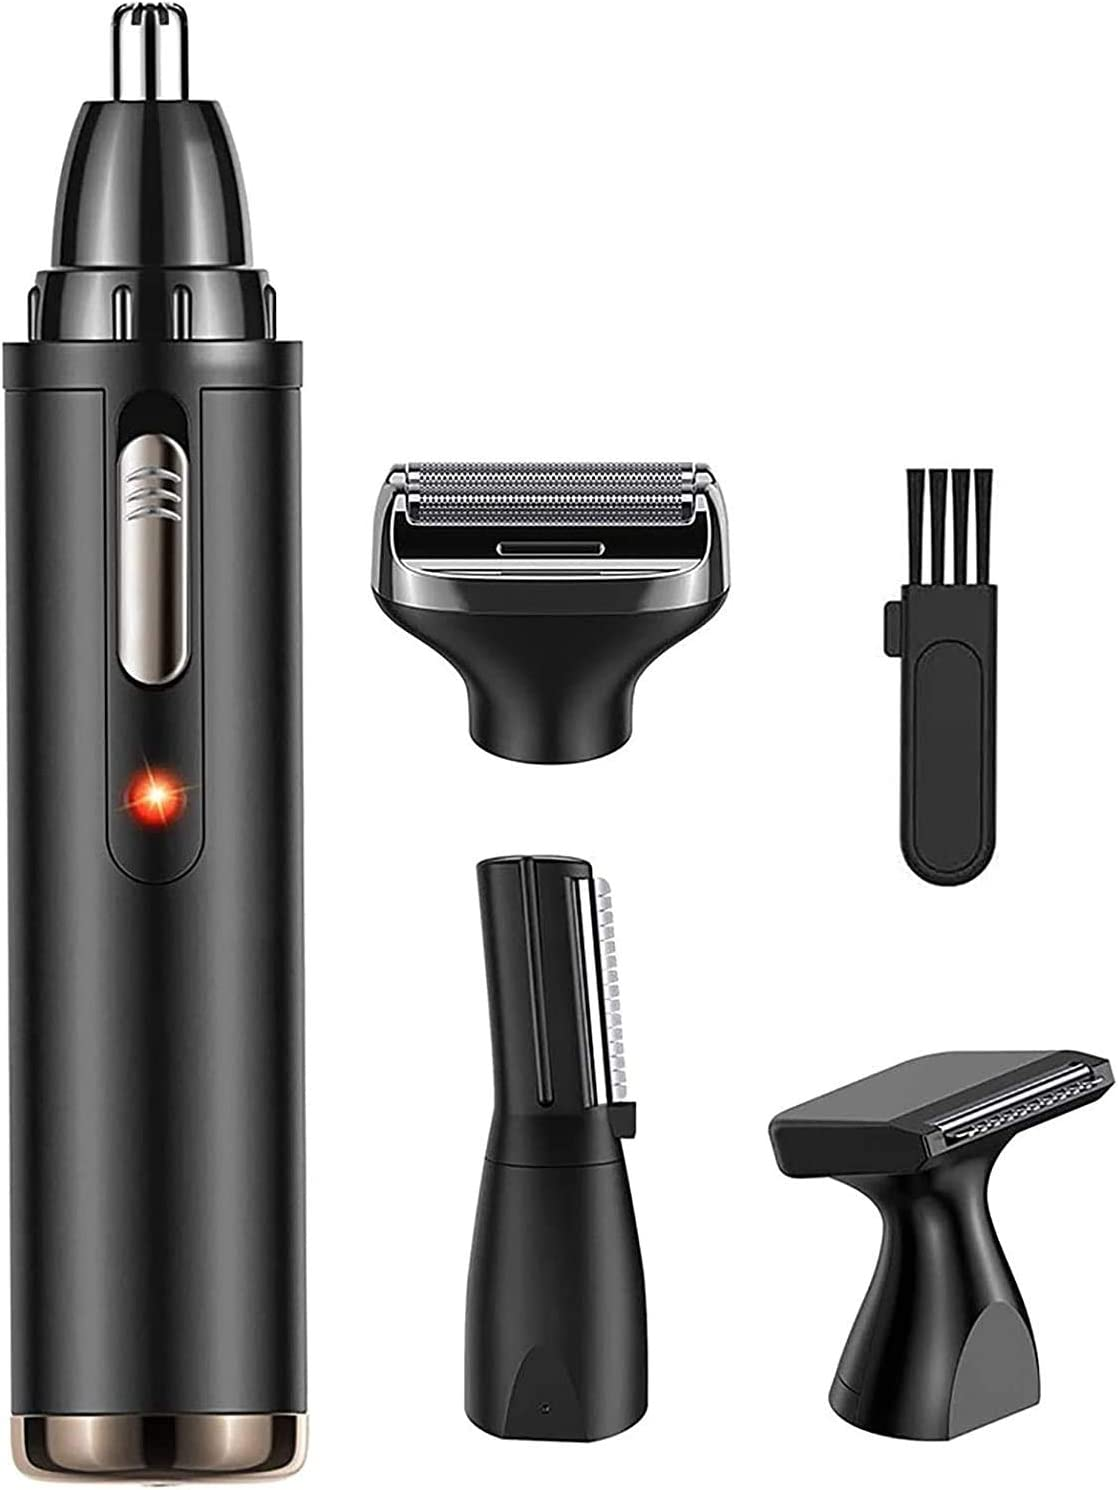 XIXIDIAN Minneapolis Mall Ear and Nose Hair Max 59% OFF Trimmer Nost for Rechargeable Men USB